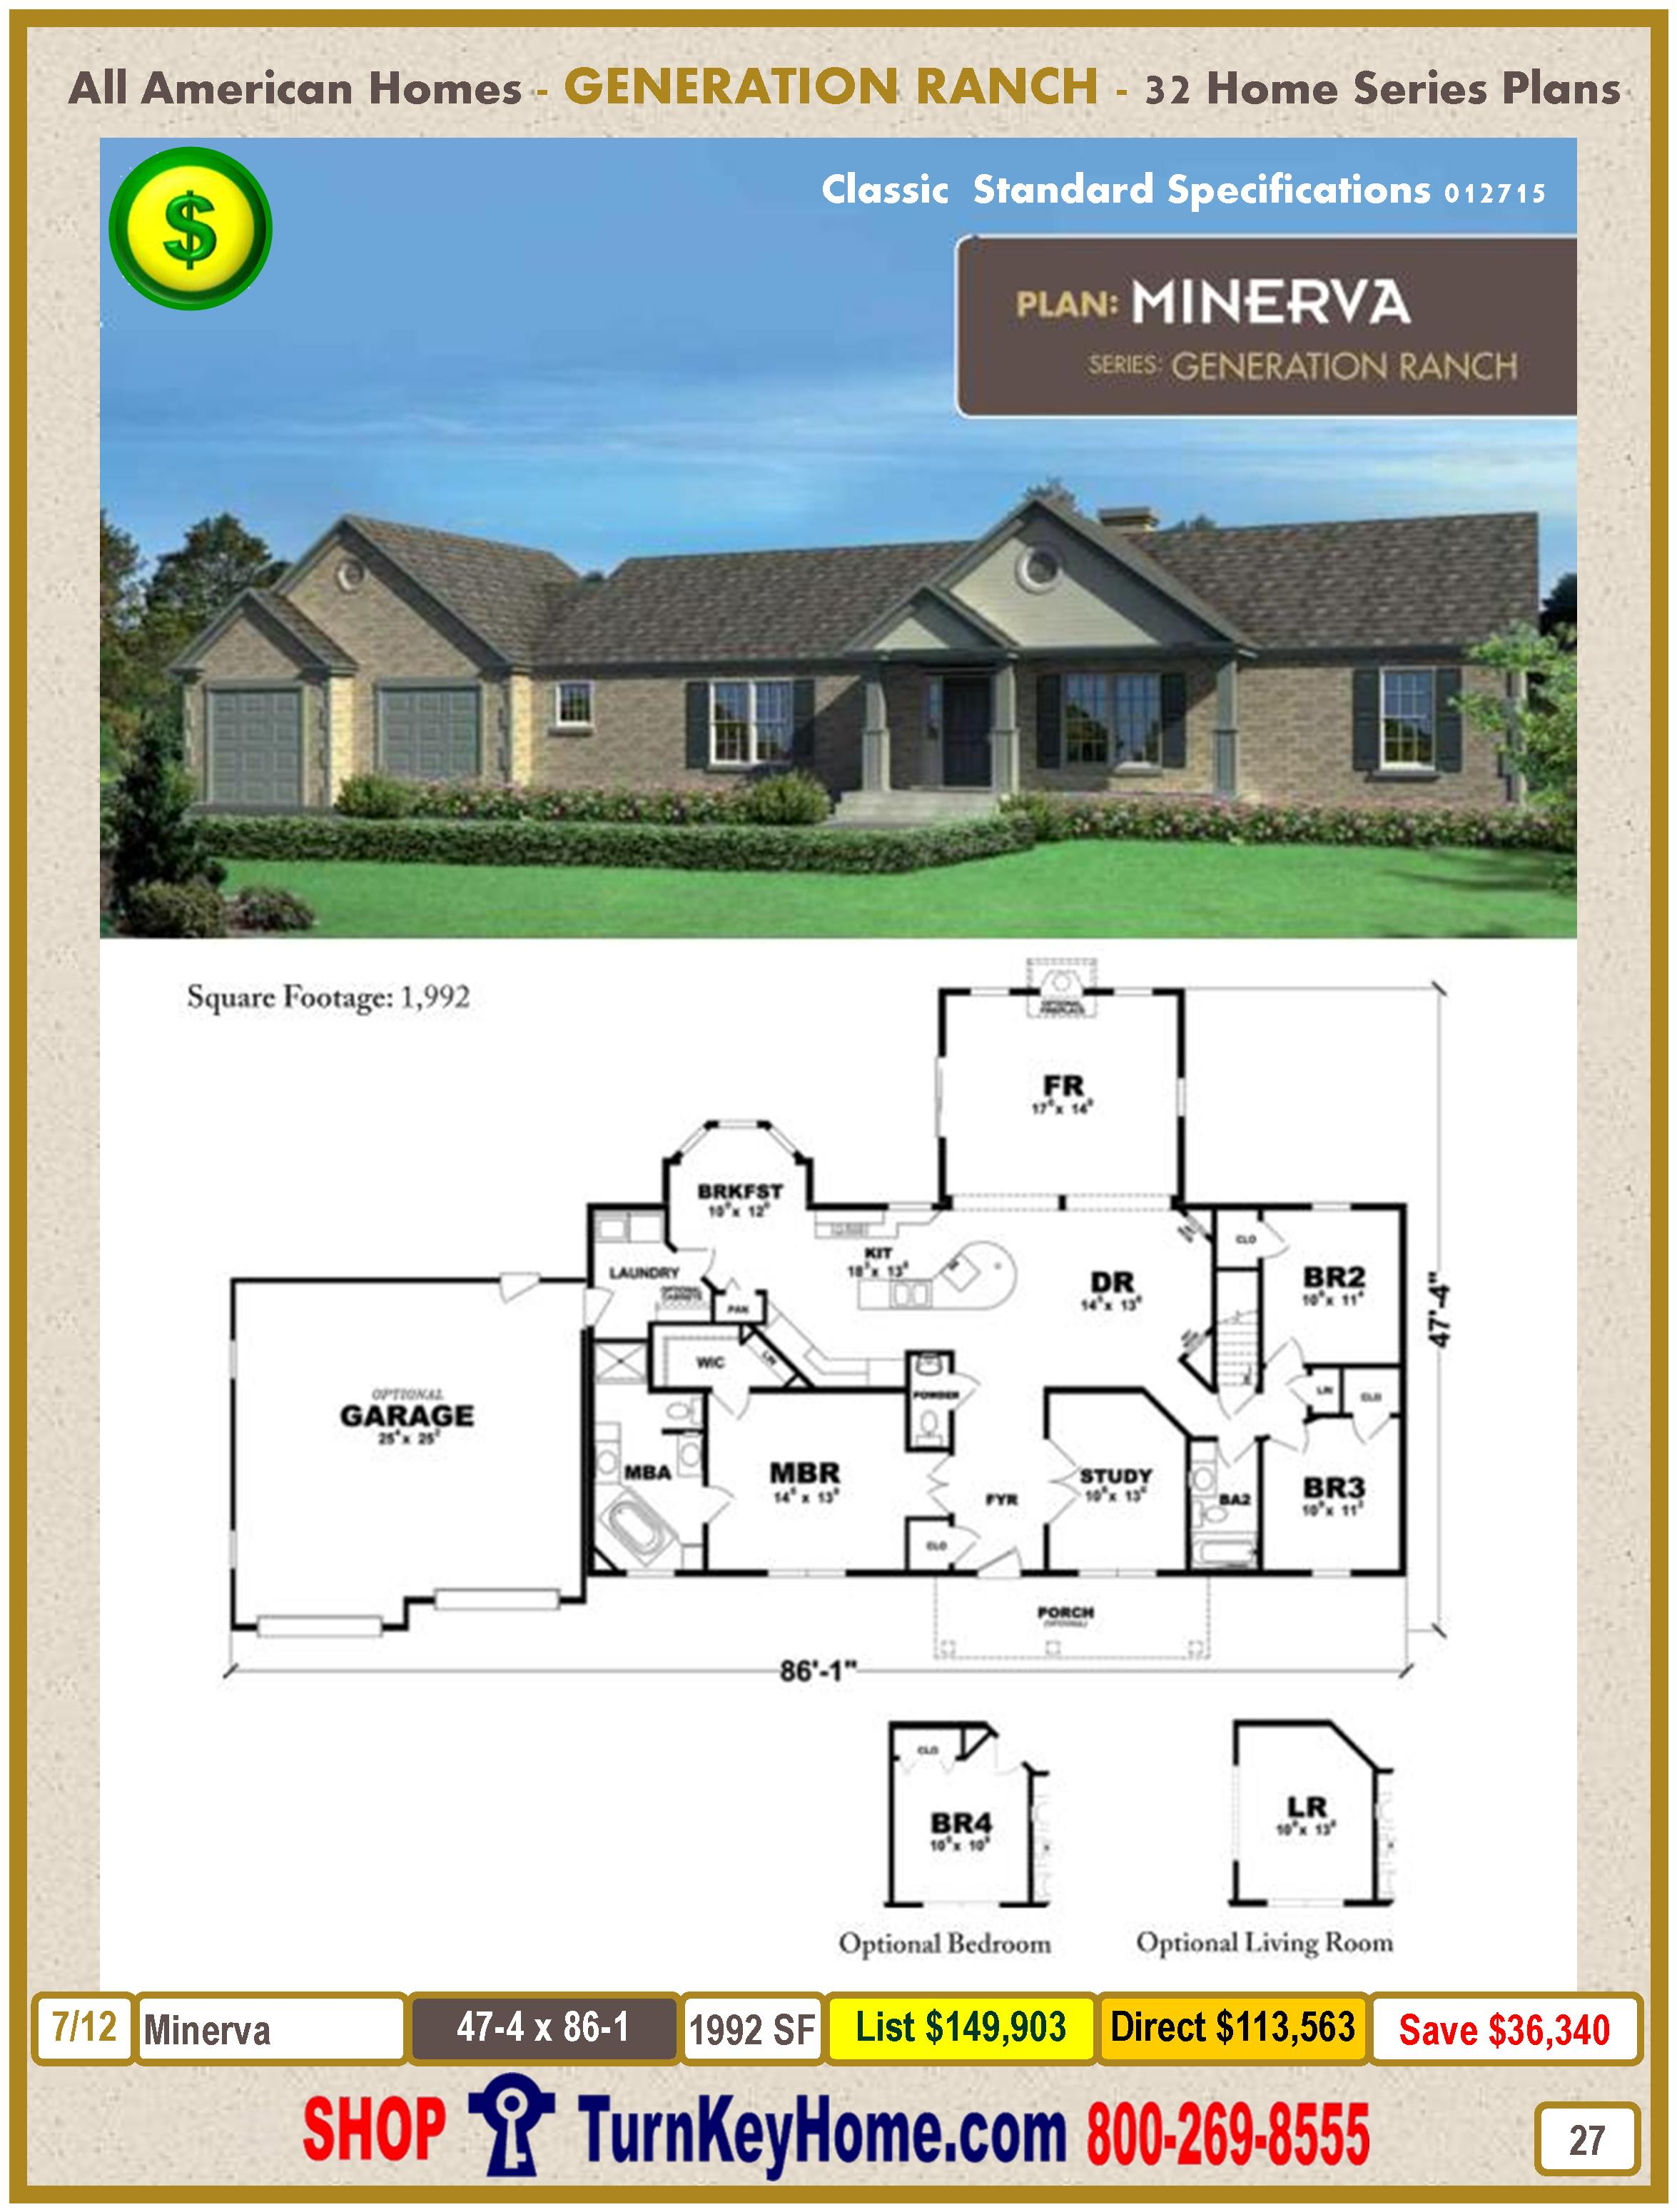 Modular.All.American.Homes.Generation.Ranch.Home.Series.Catalog.Page.27.Minerva.Direct.Price.021415